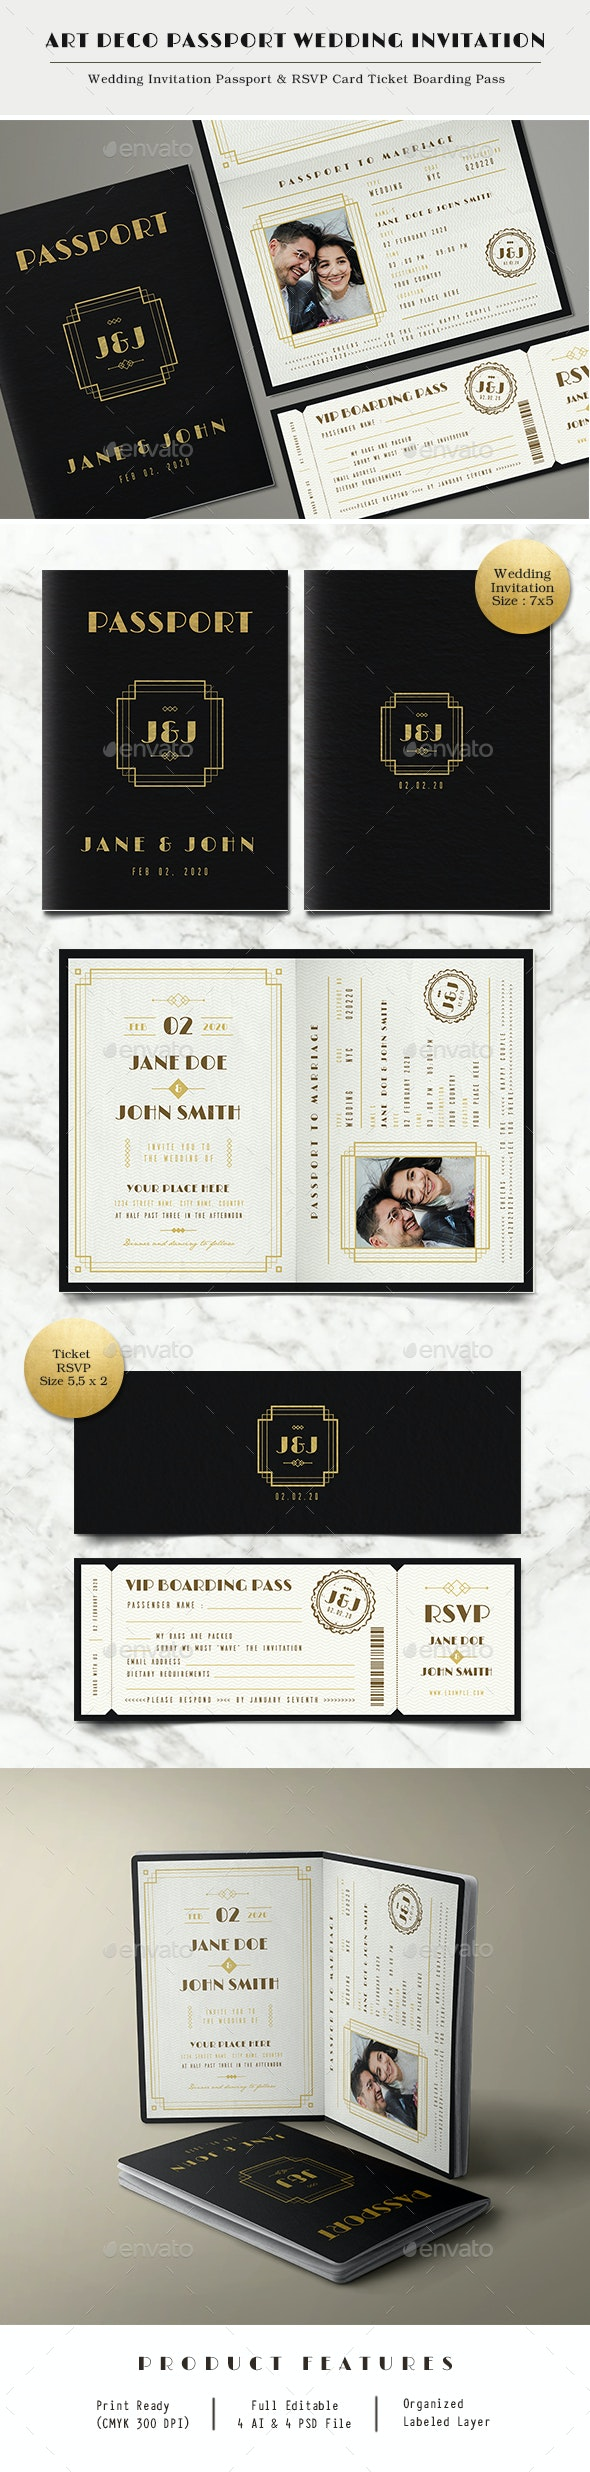 Art Deco Passport Wedding Invitation - Weddings Cards & Invites